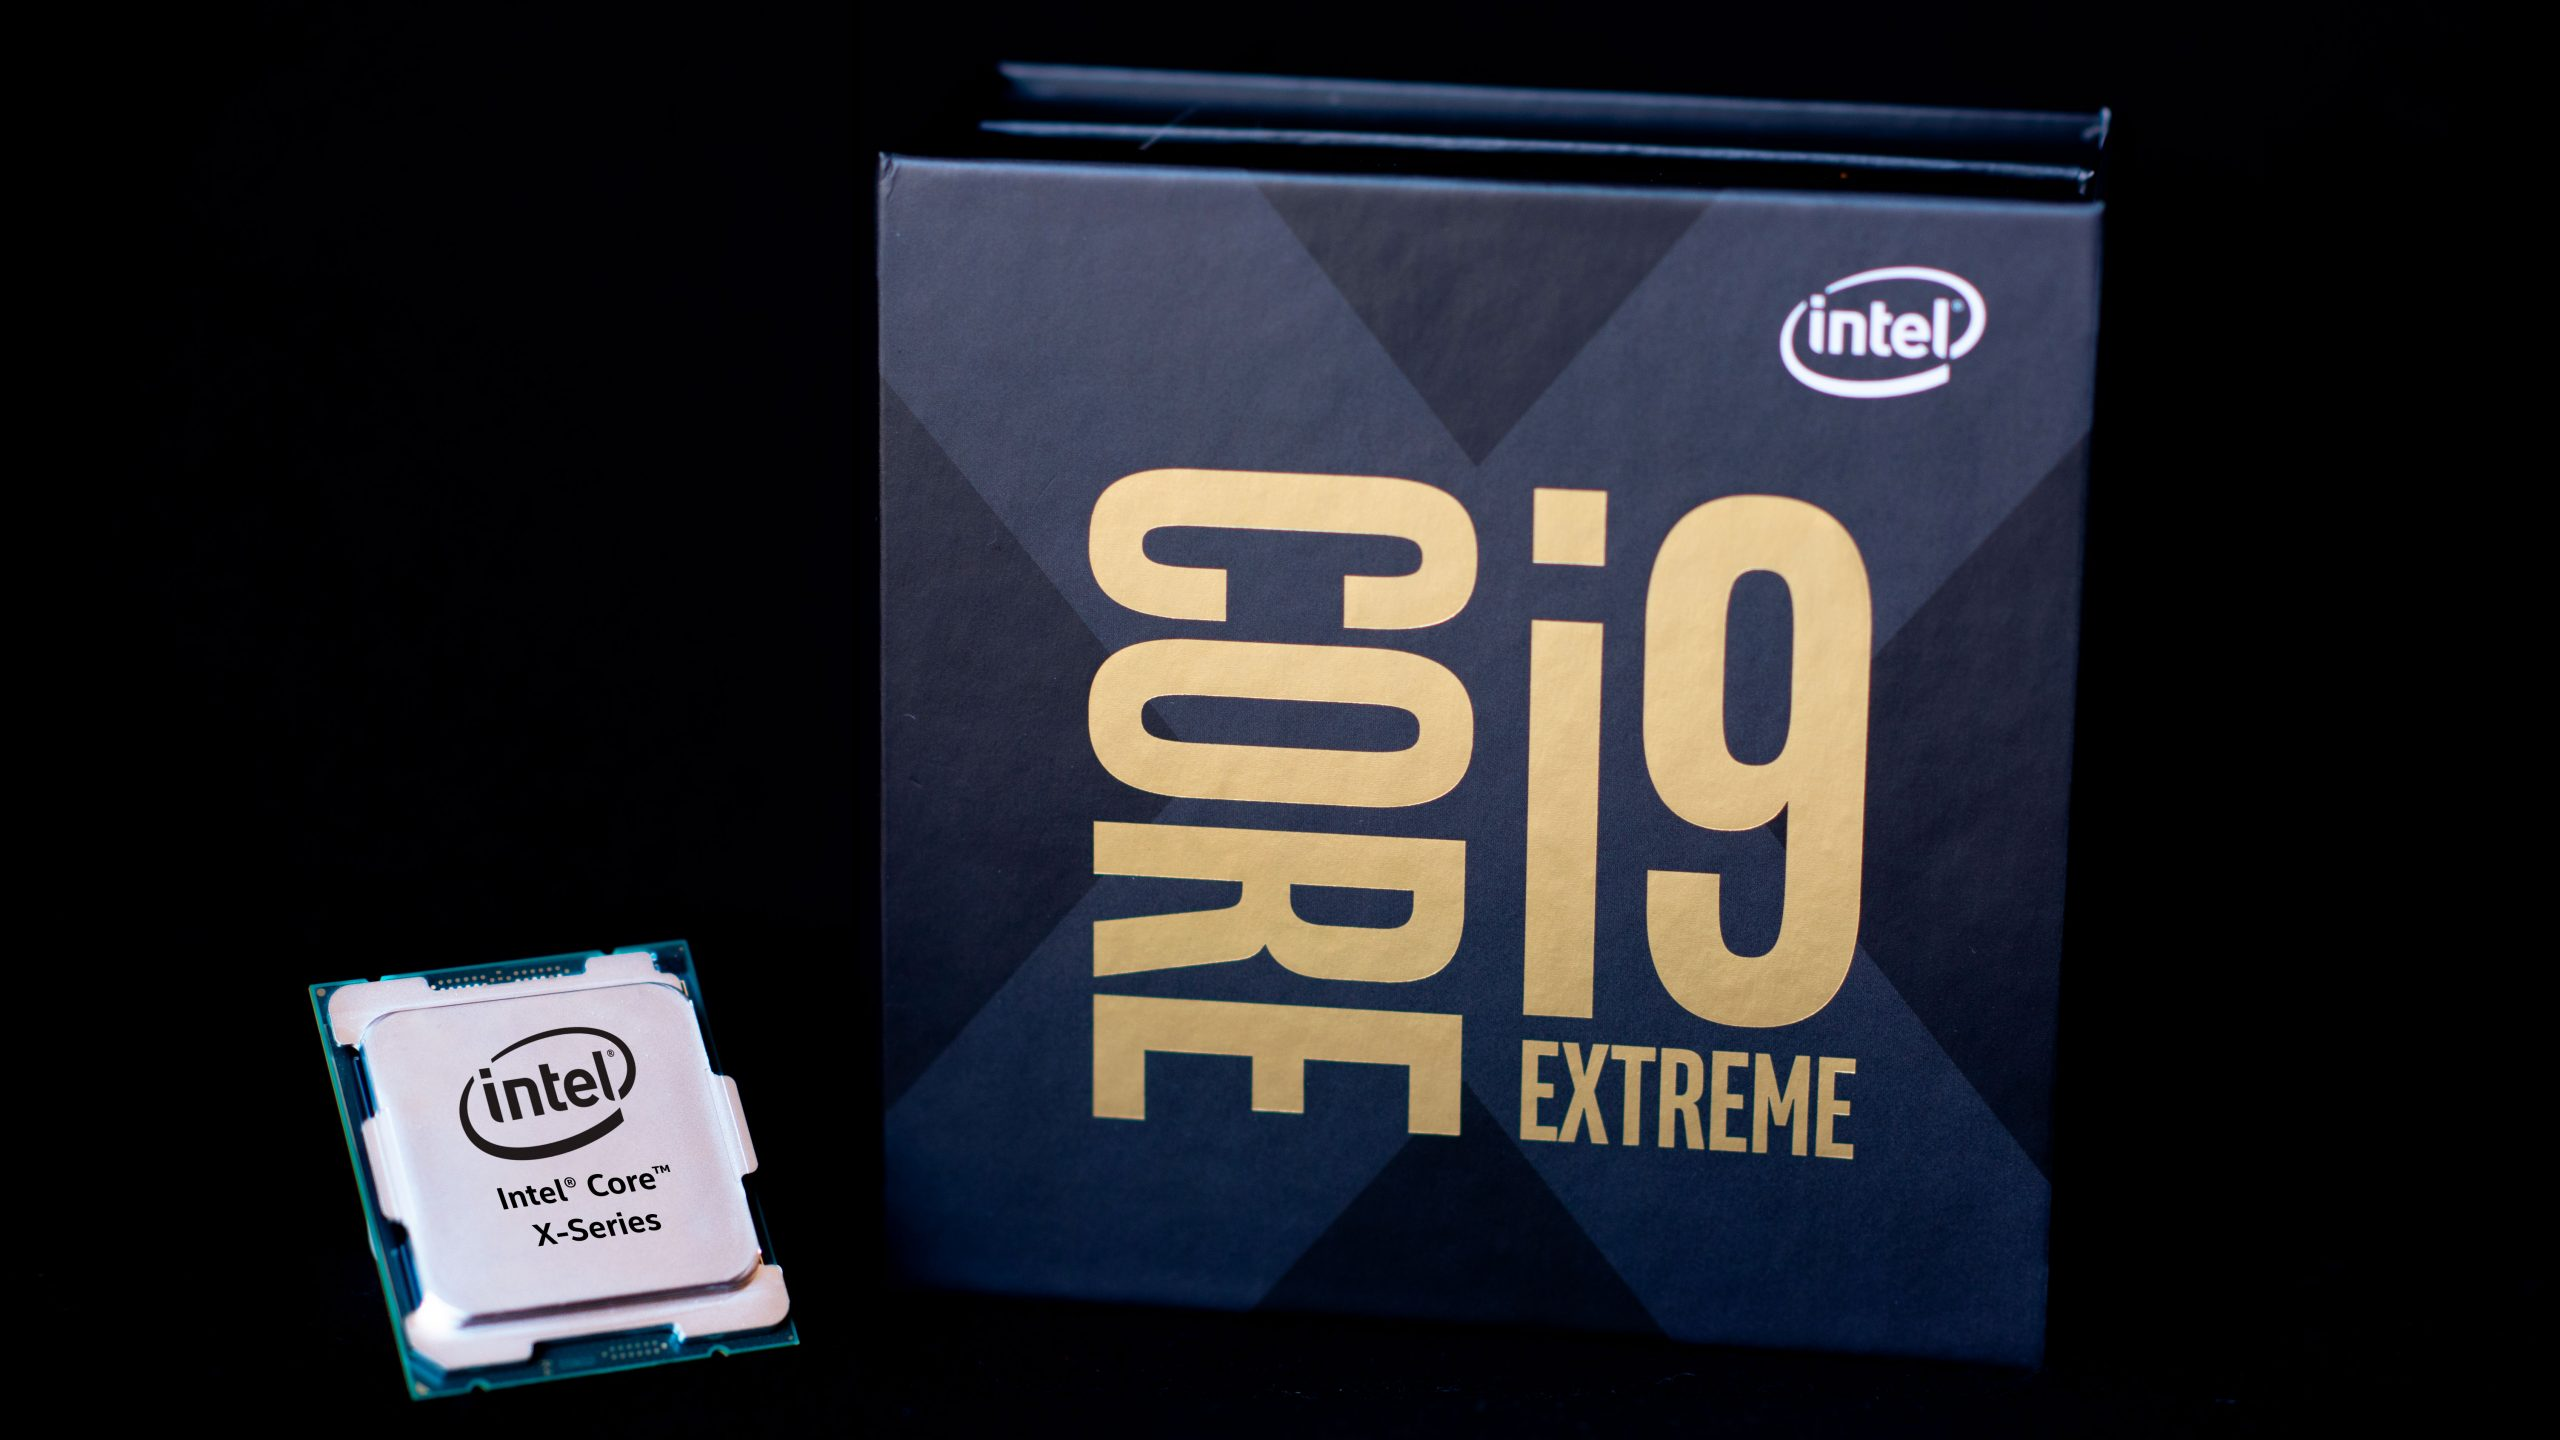 Intel Roadmap Suggests No New High-End Desktop Processors This Year